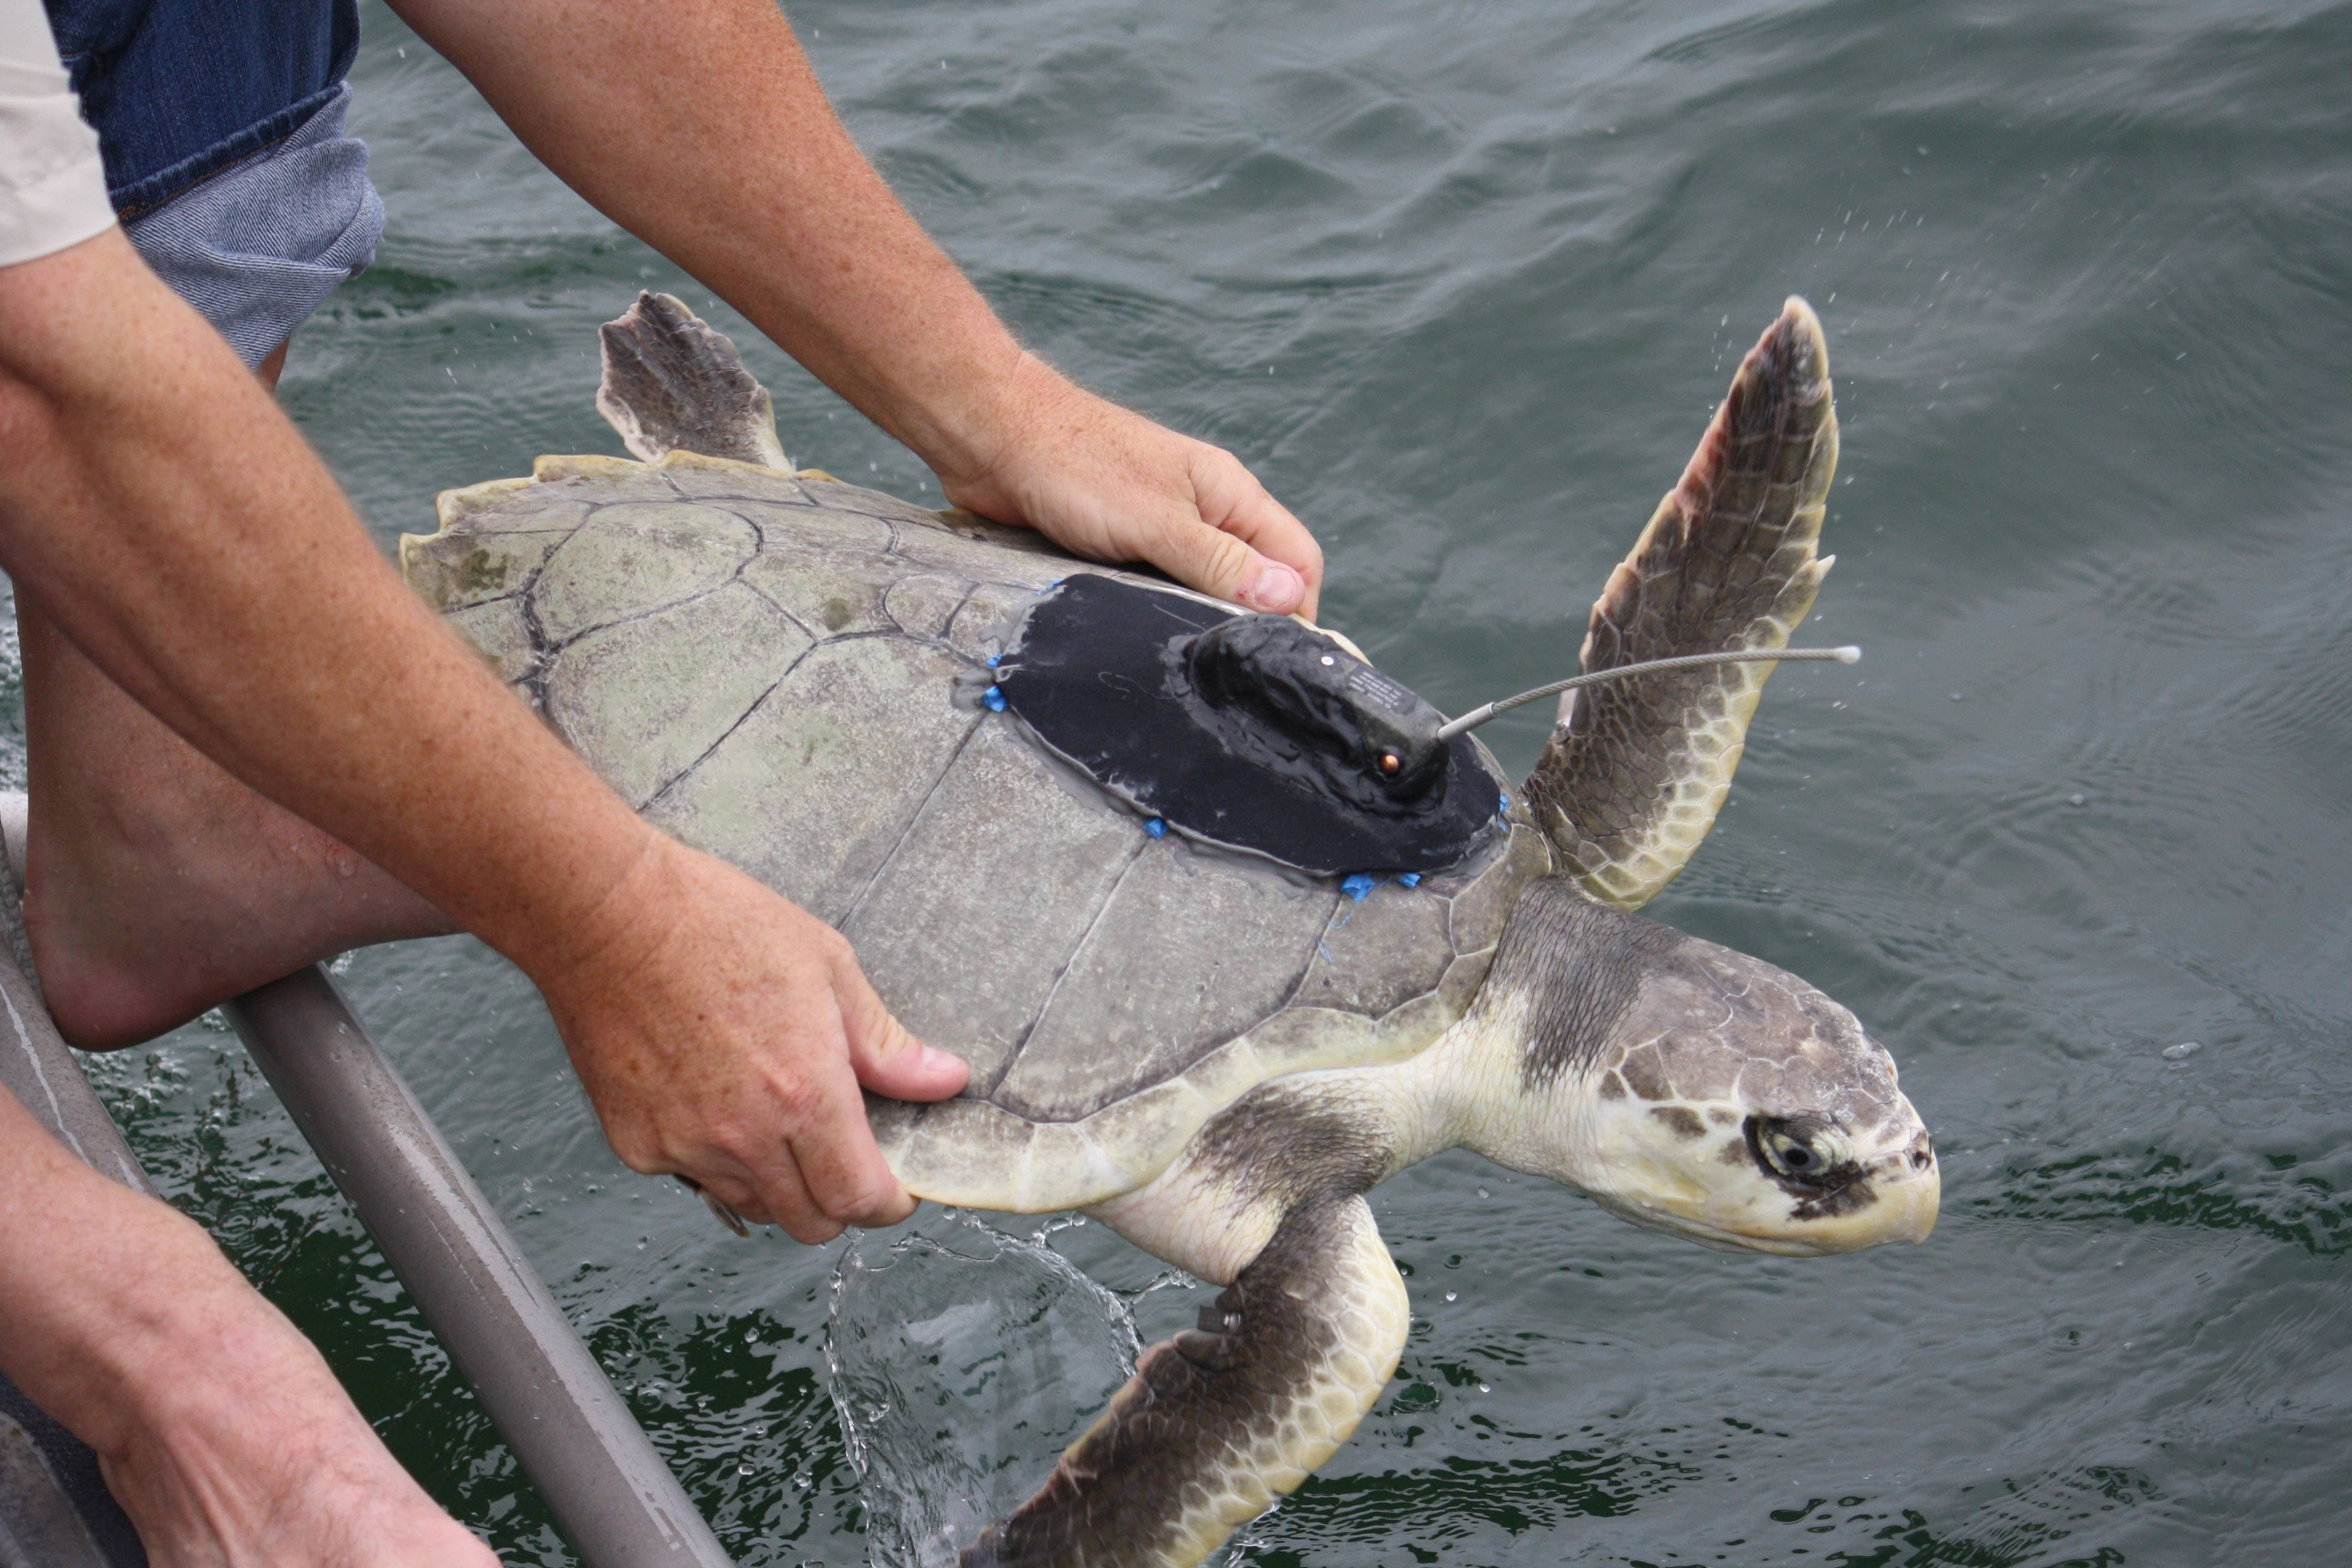 A satellite tagged Kemp's ridley sea turtle named Hugo is released, near Gulfport, Miss., into the Gulf of Mexico for the purpose of having its migration through the gulf tracked.